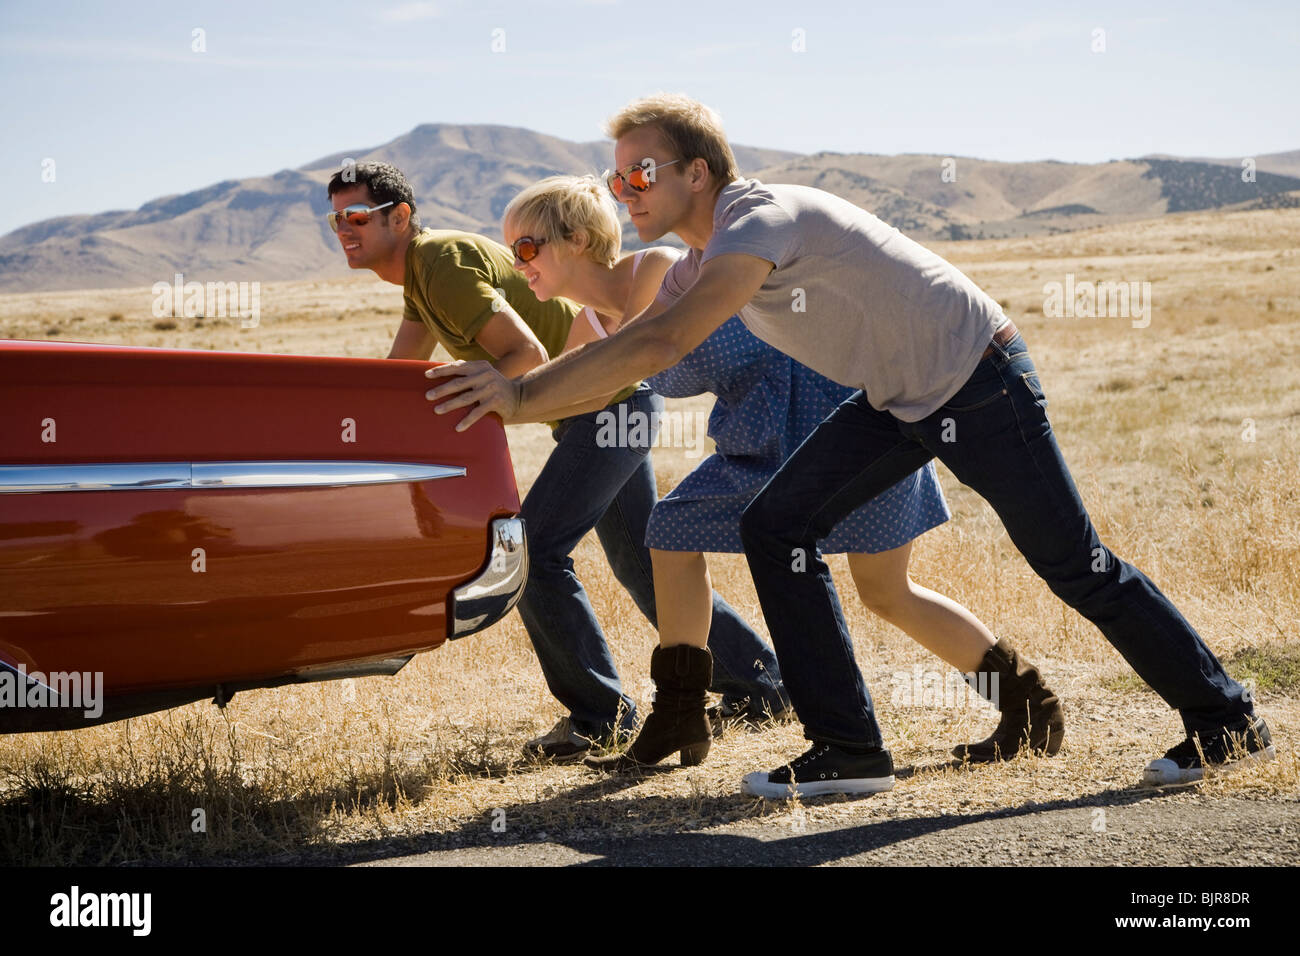 people pushing a car down the road - Stock Image